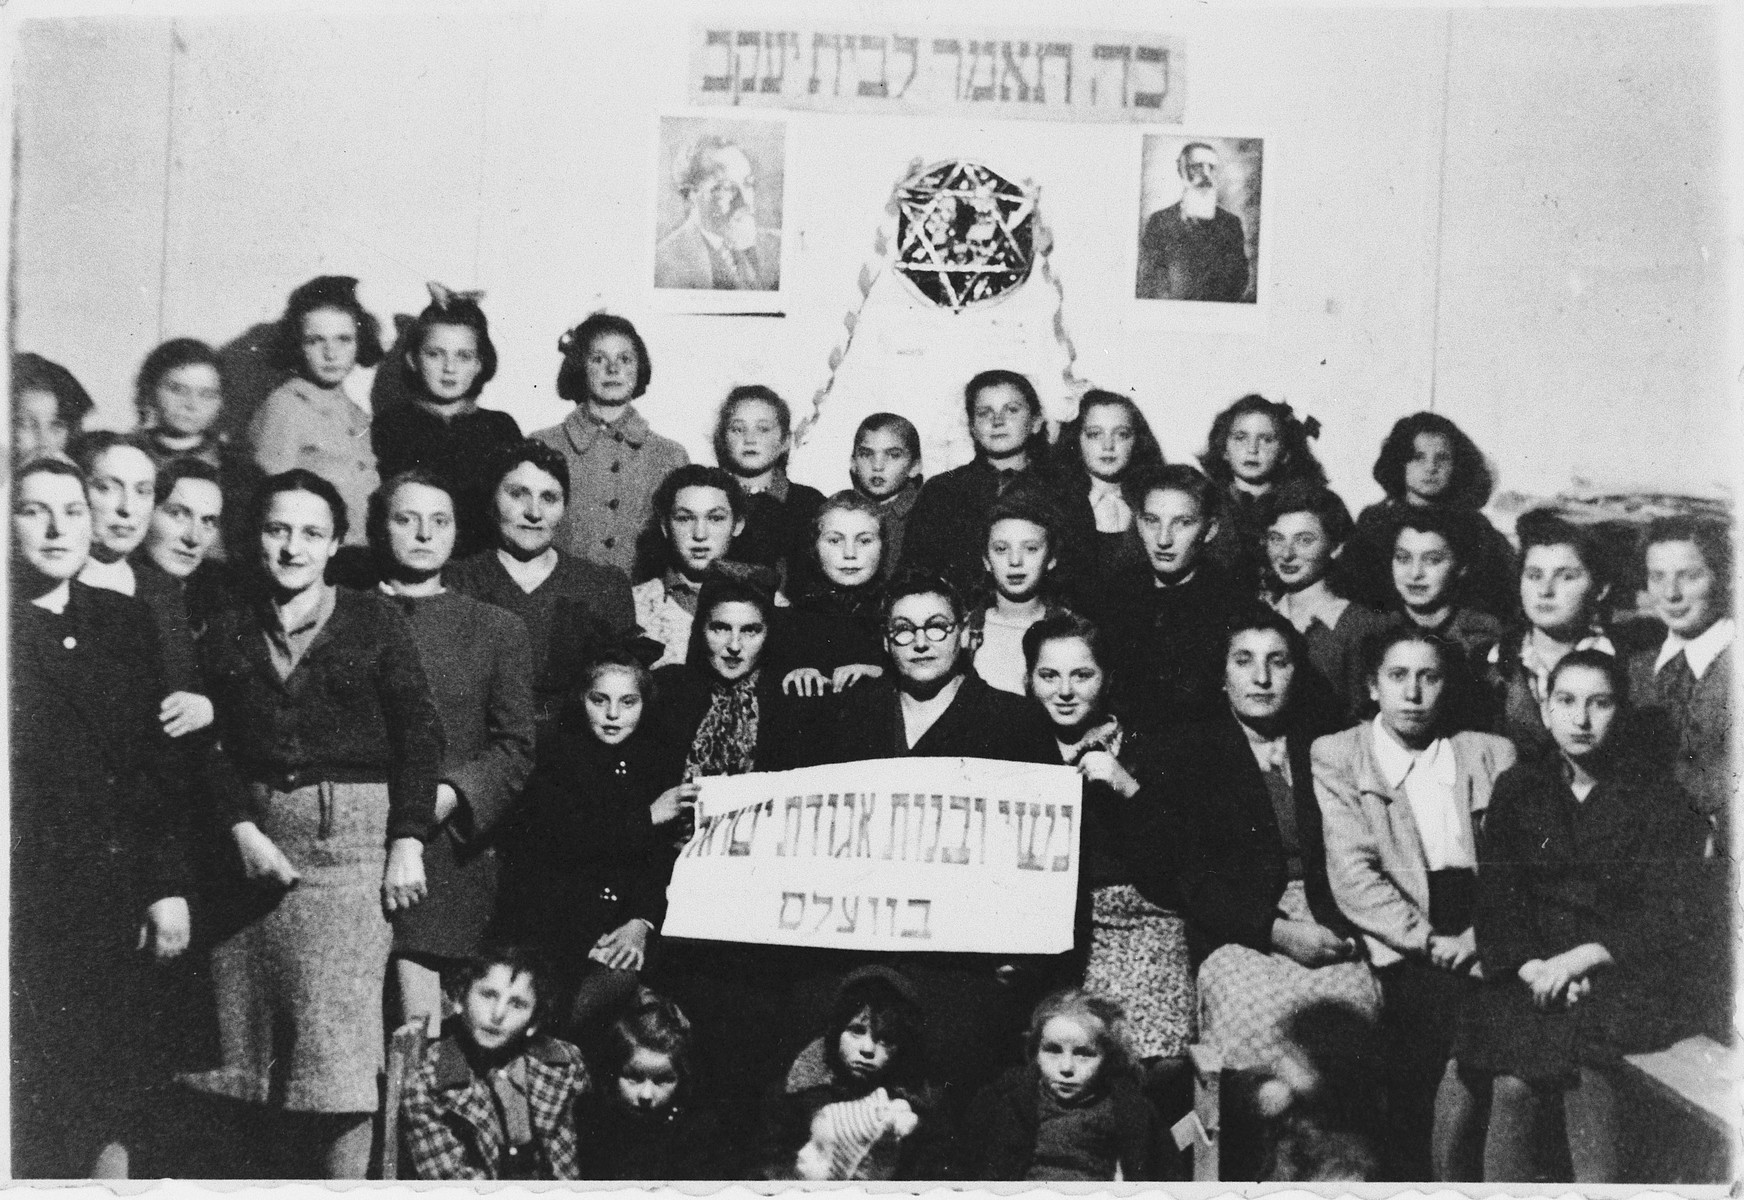 Group portrait of the students and teachers from the Beit Yaakov school in the Wels displaced persons' camp.  Those pictured include Charlotta Wagner.